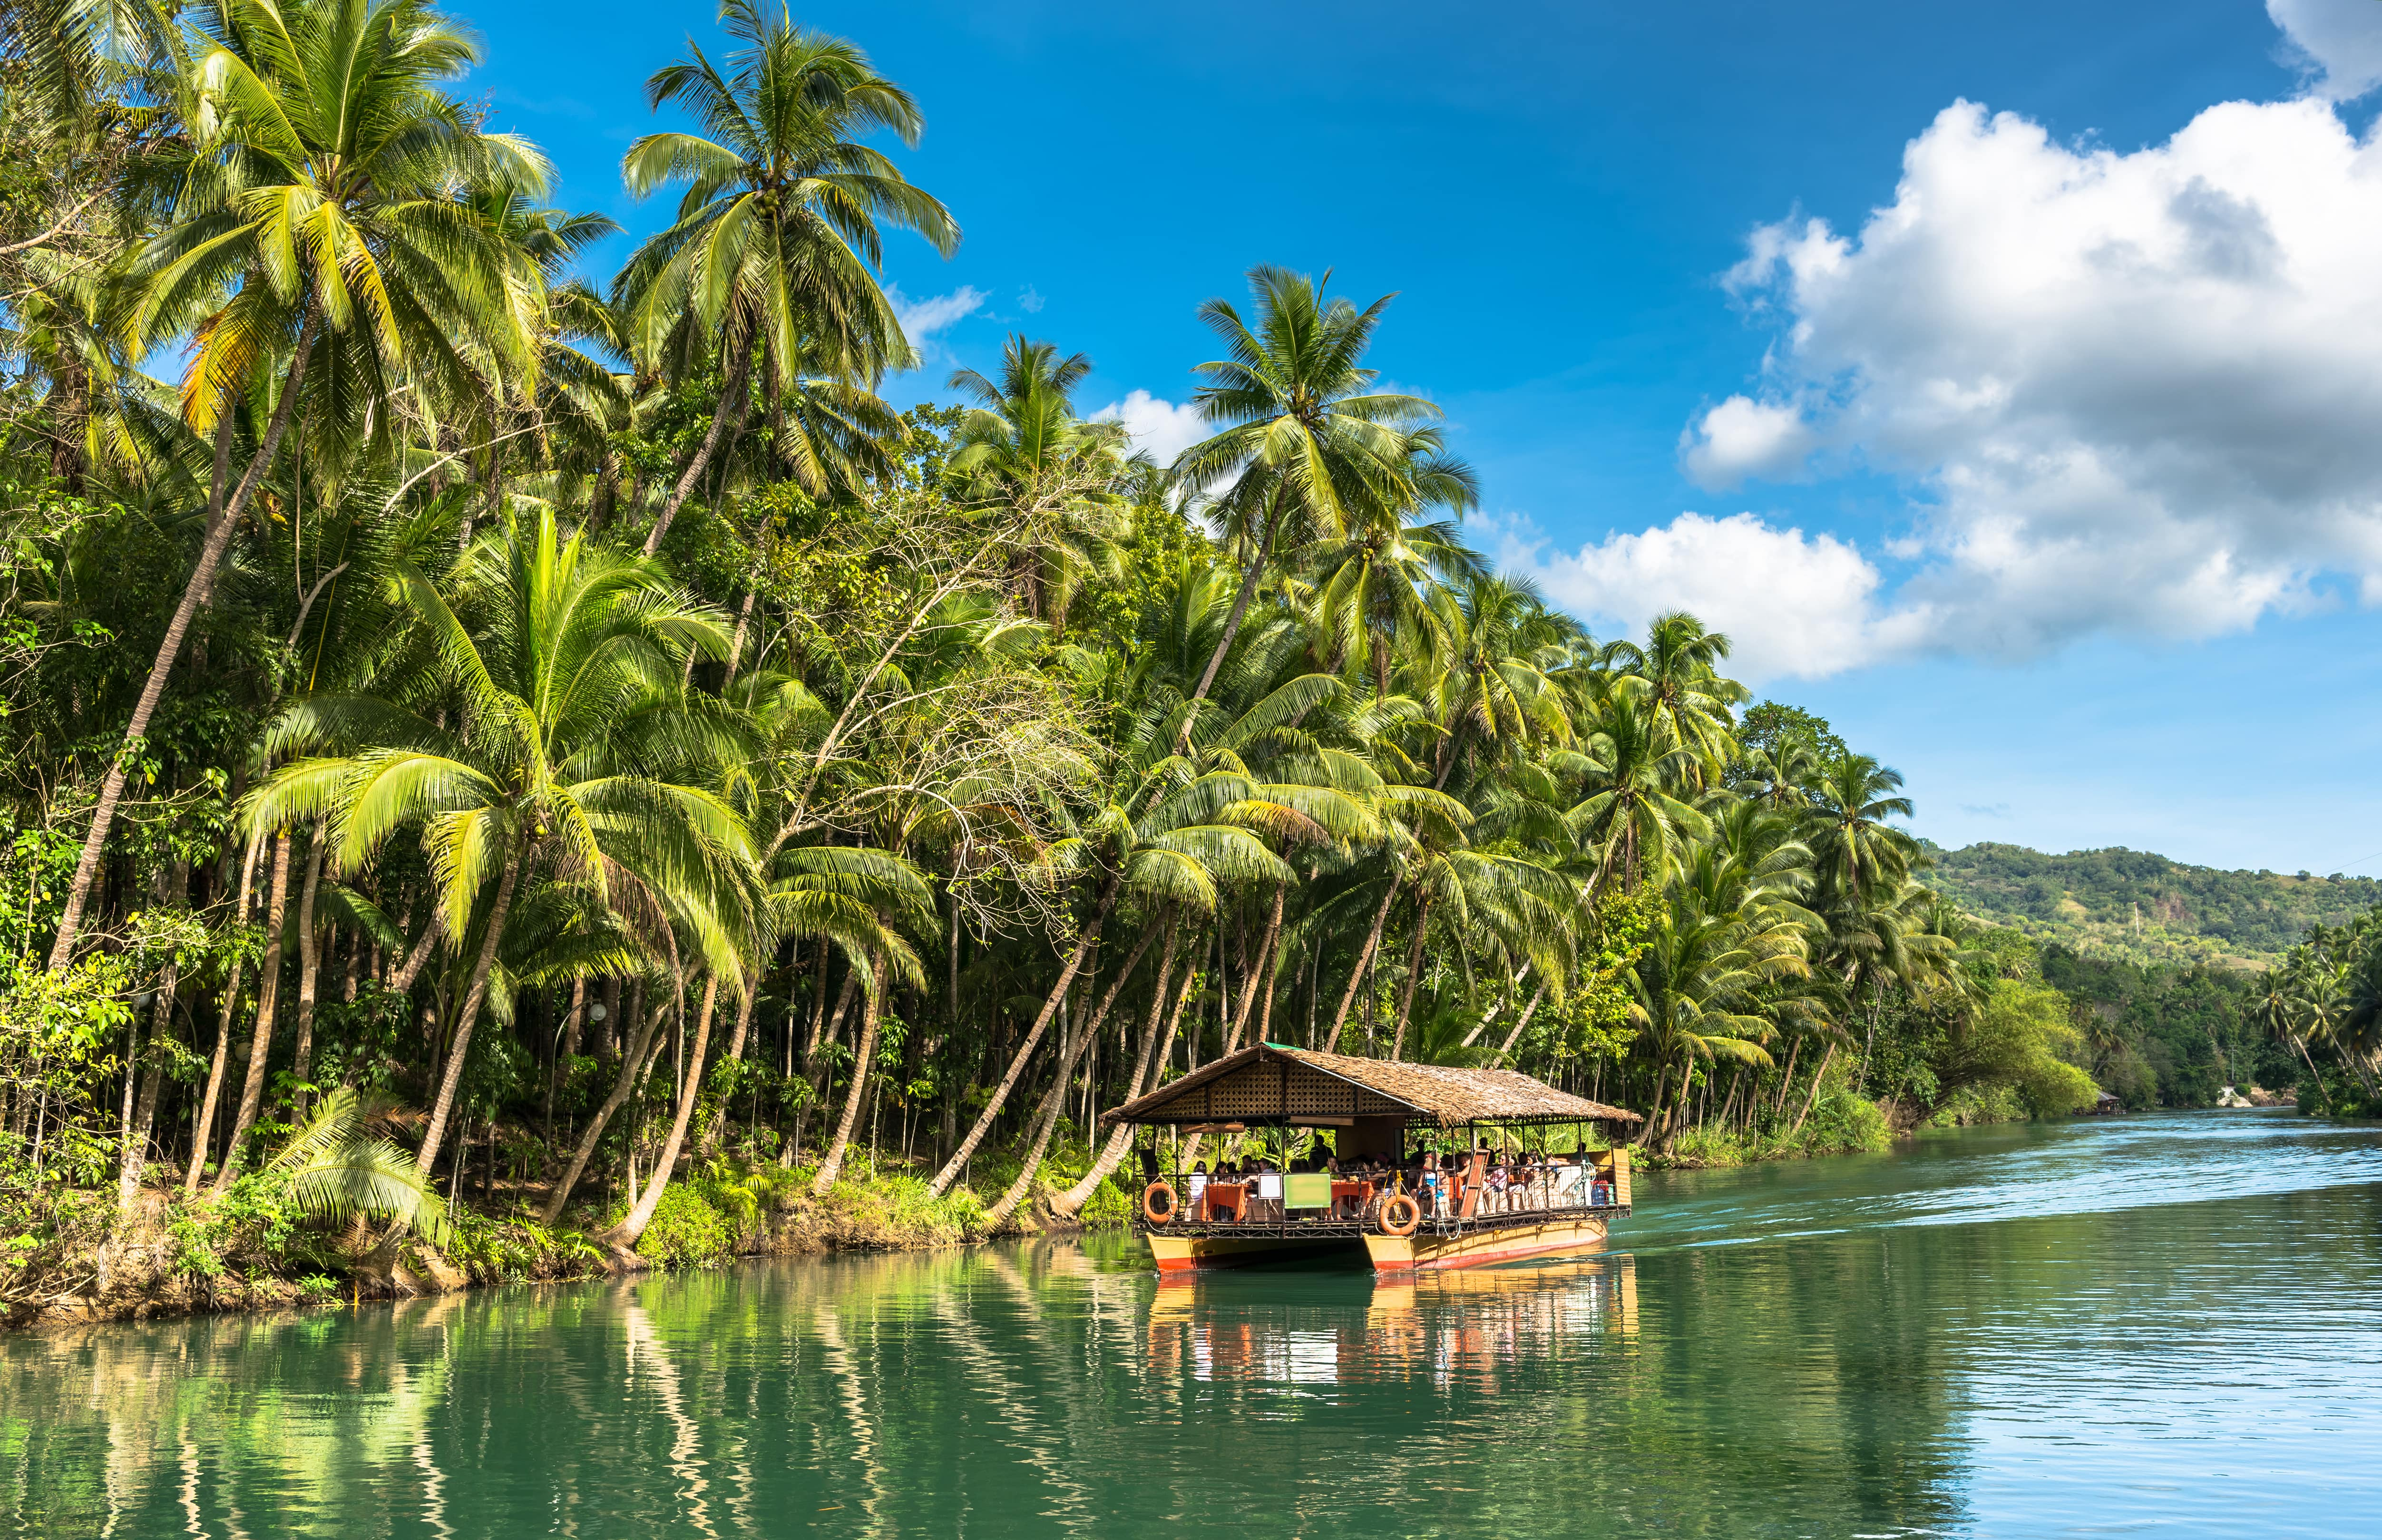 Peaceful environment during the Loboc River Cruise in Bohol